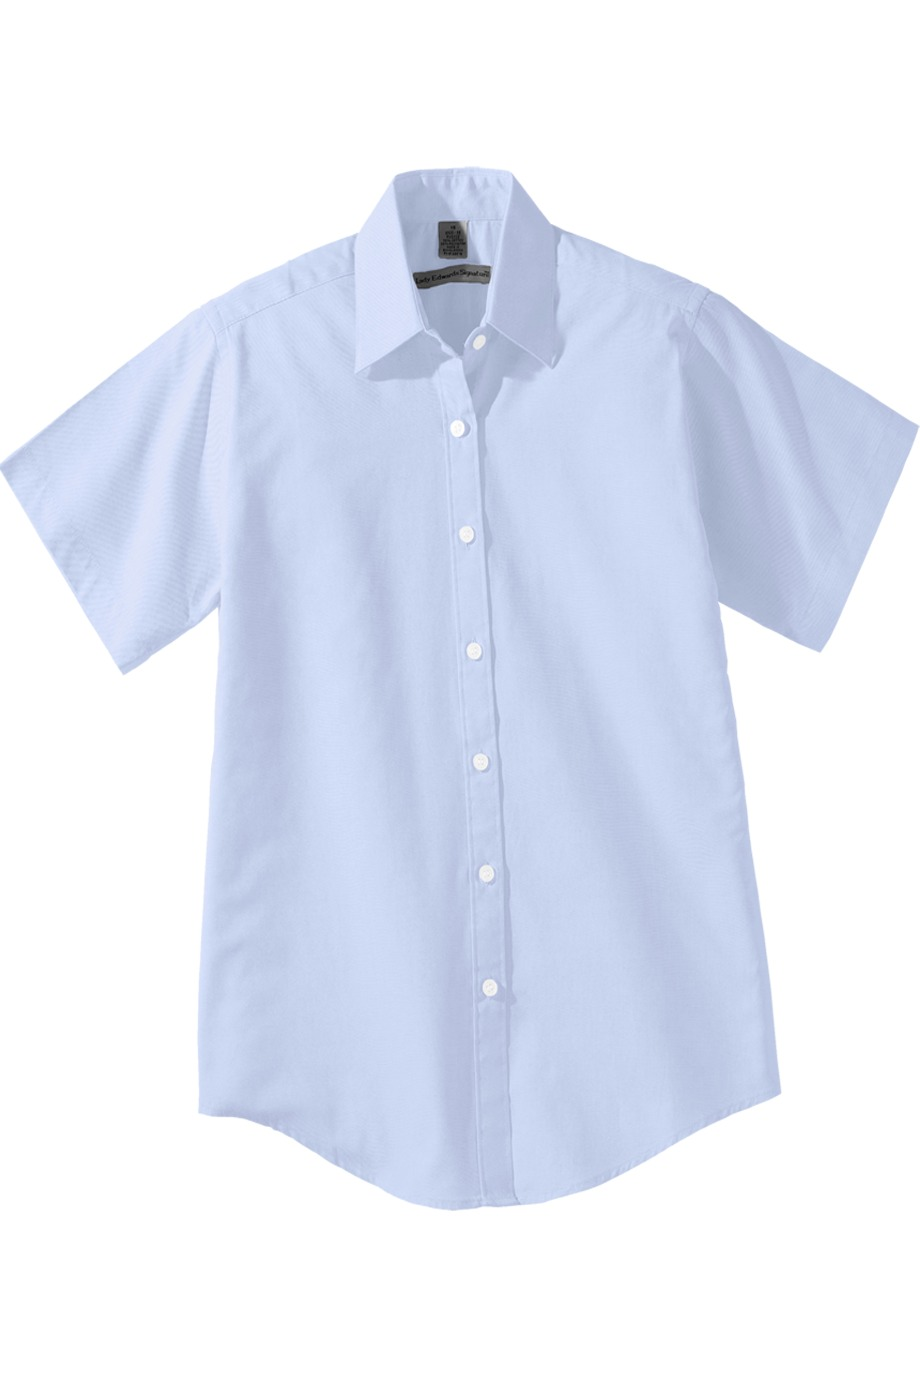 Edwards Garment 5925 - Women's Short Sleeve Pinpoint Oxford Shirt